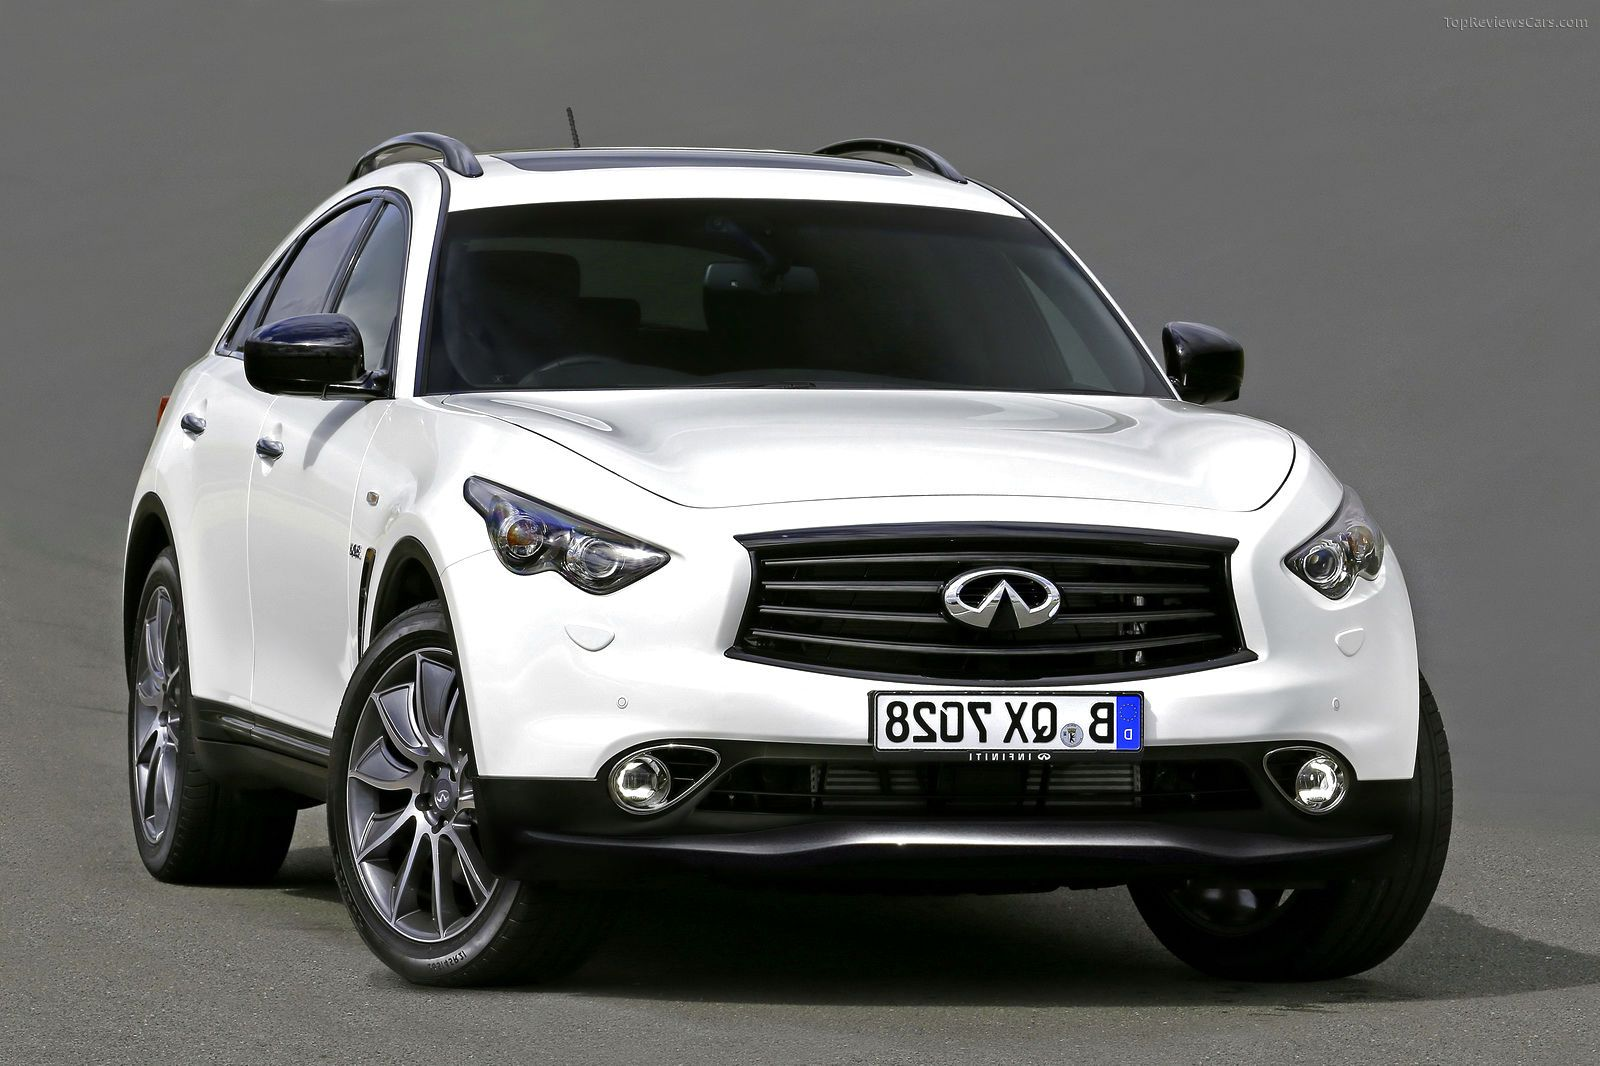 2017 Infiniti QX70 Limited Reviews, Price, Spec,Sale And